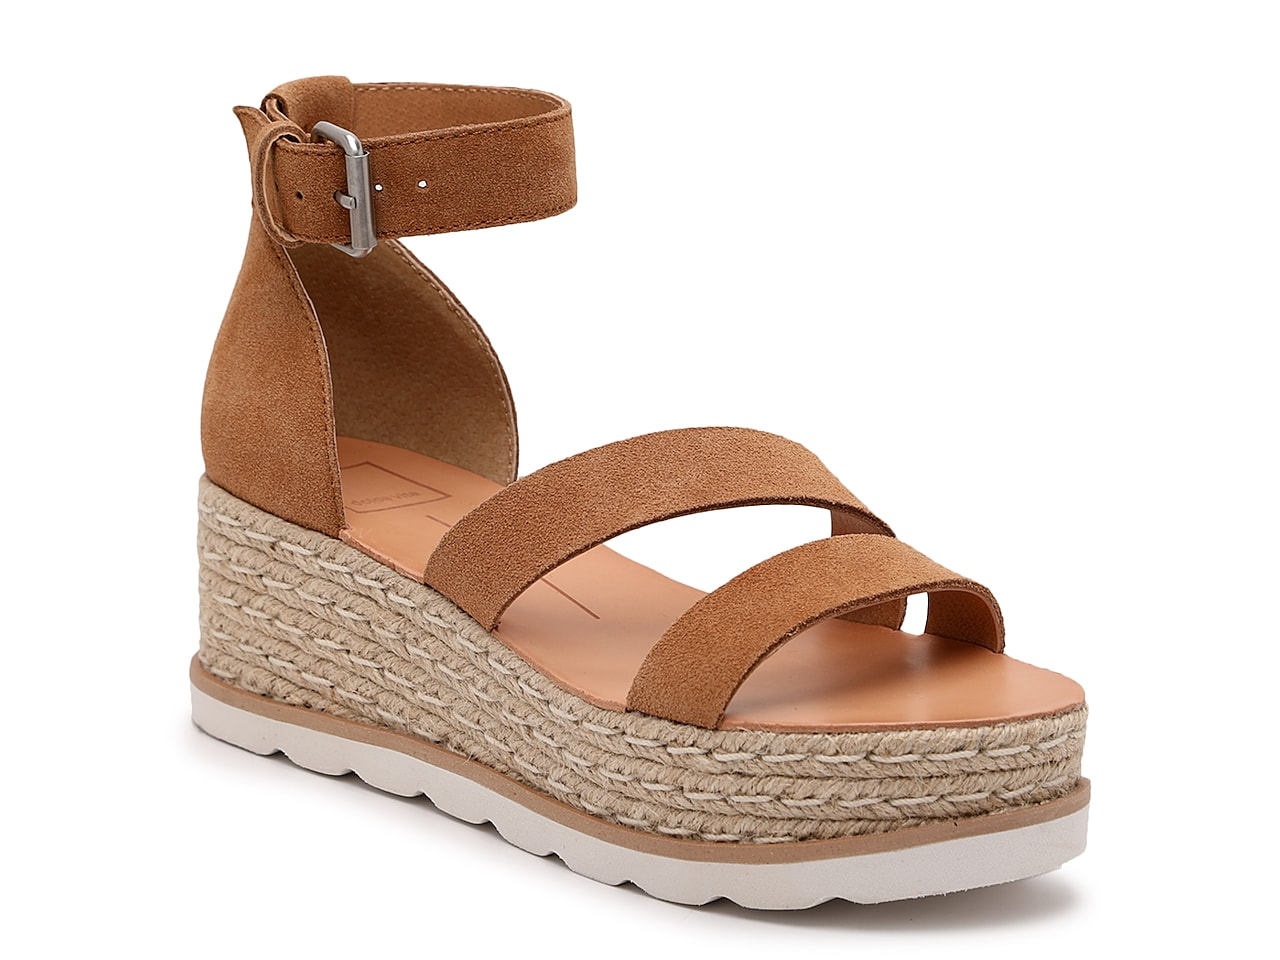 UP TO 50% OFF Sandals at DSW!